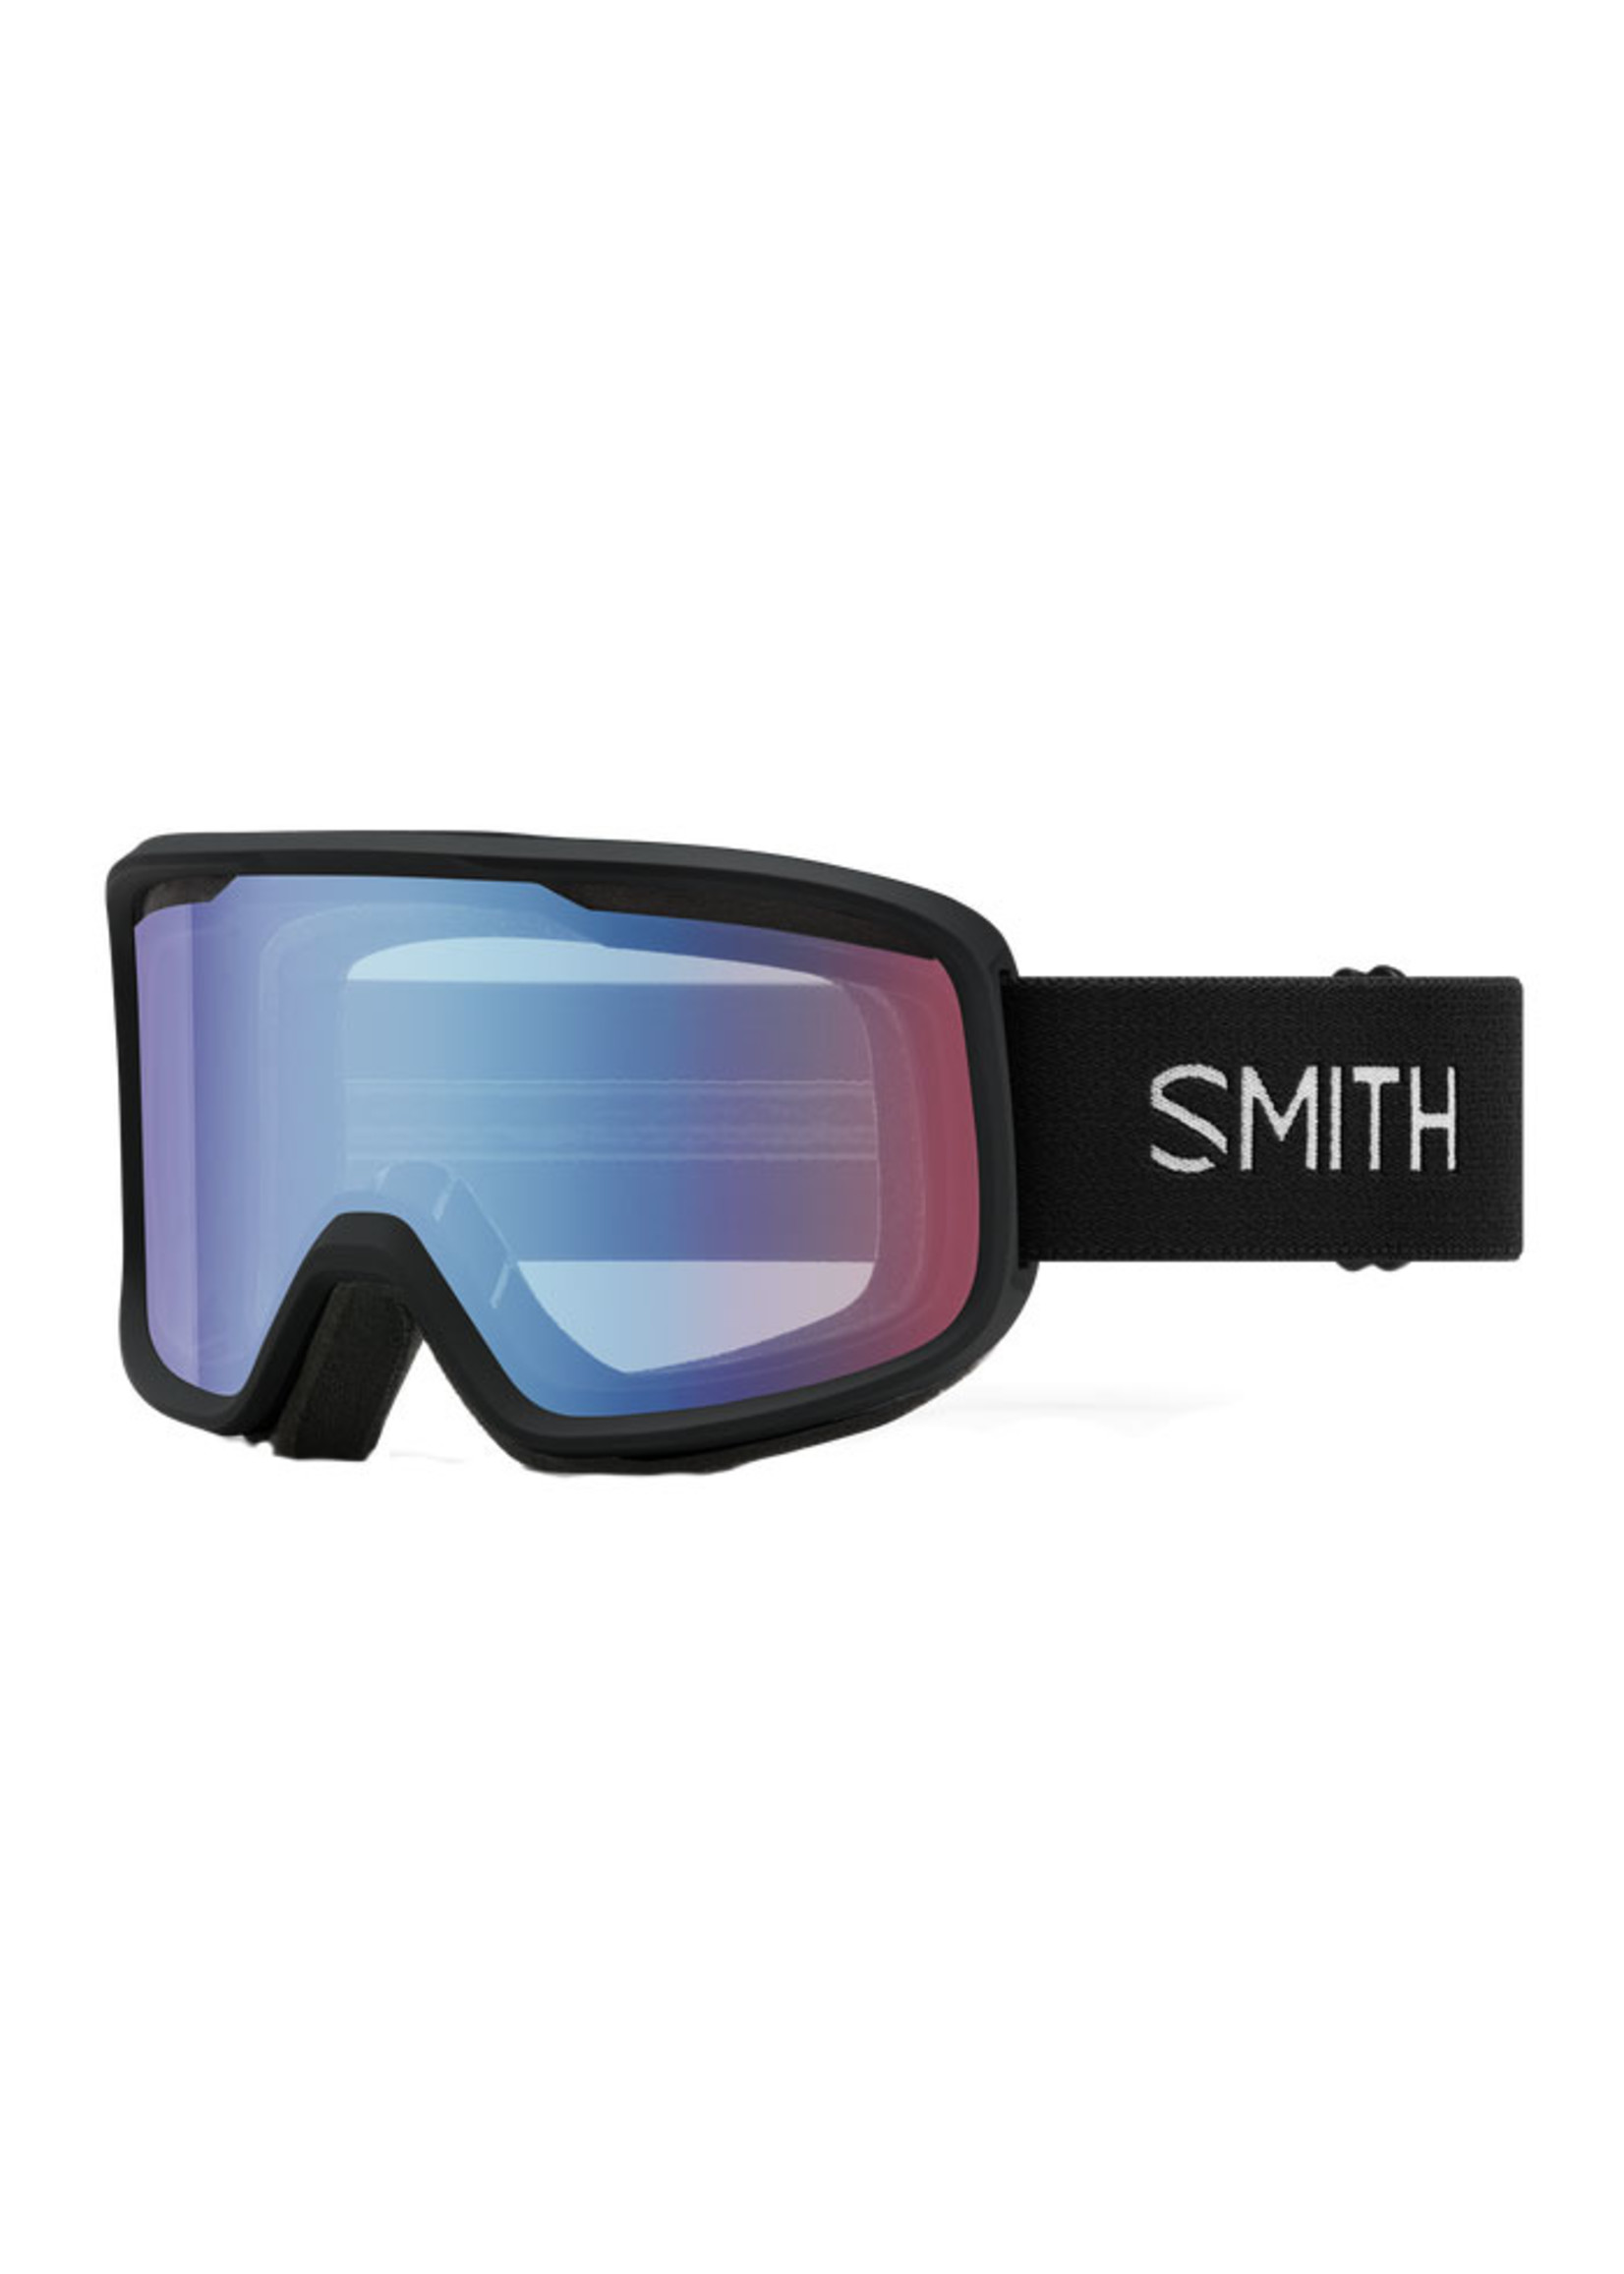 SMITH FRONTIER LUNETTE